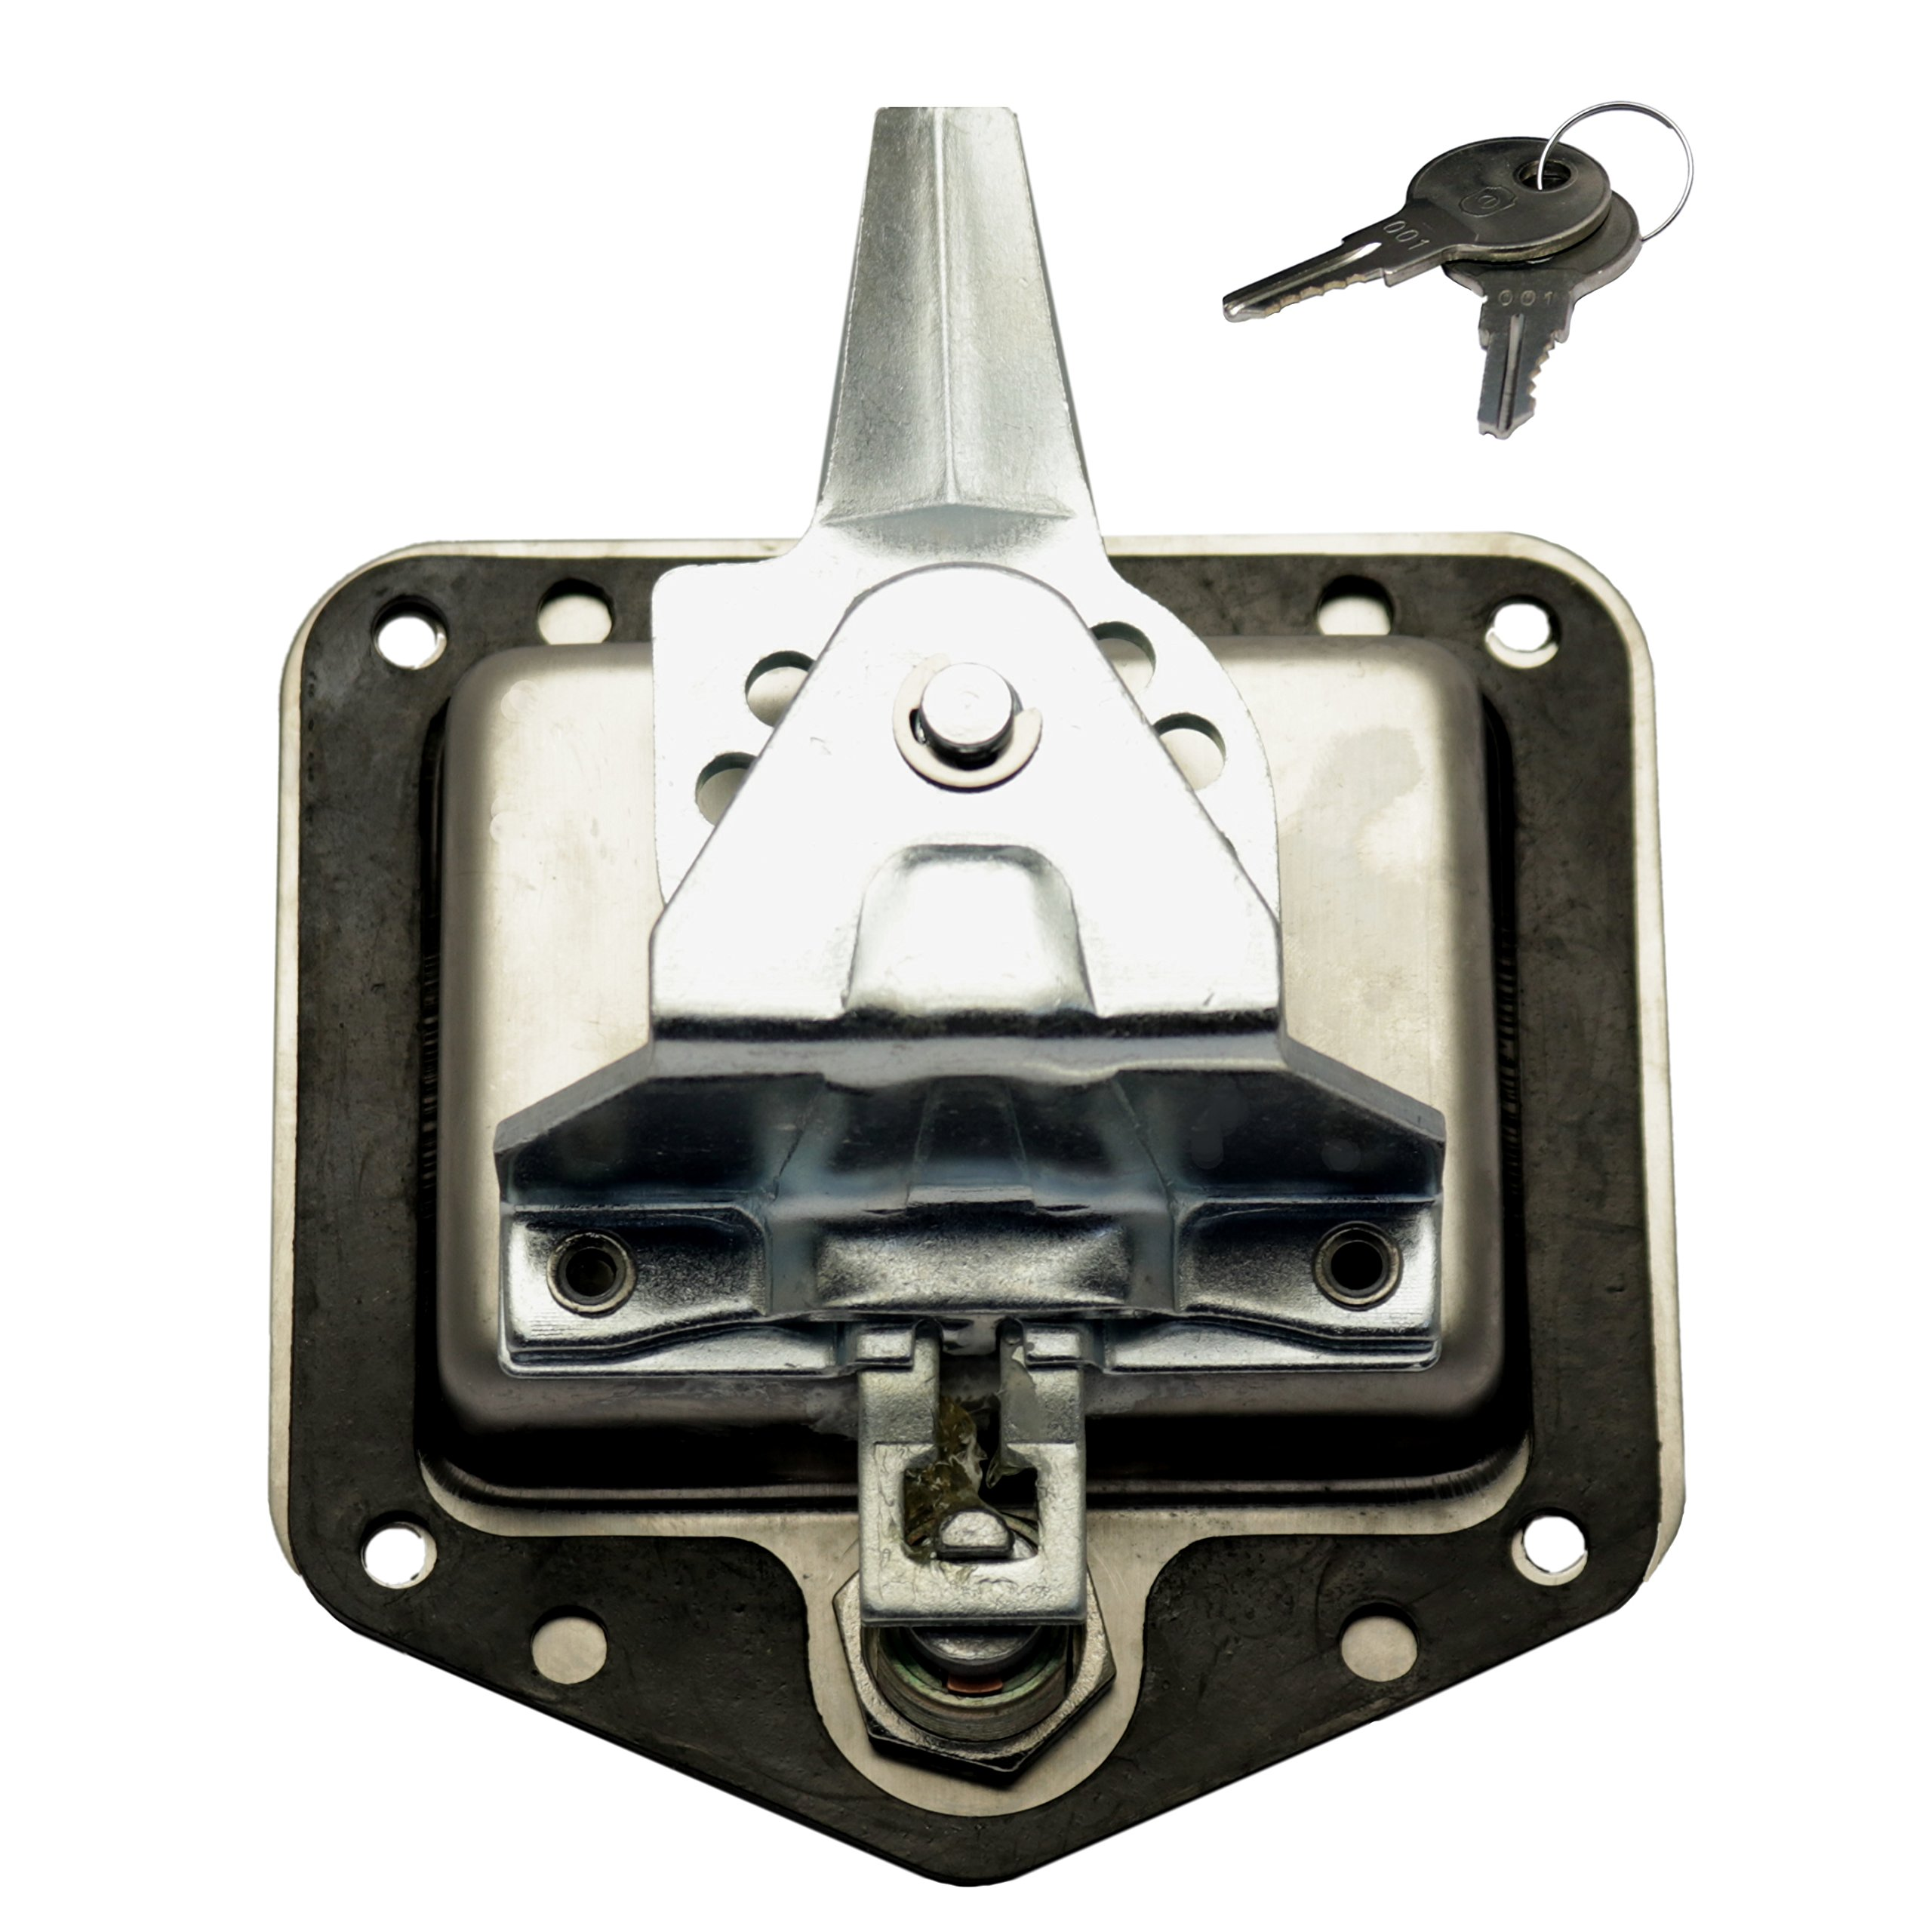 TCH Hardware Stainless Steel T-Handle Latch with Mounting Holes & Lock Dust Cover - Folding T Handle Latch Jeep Truck Trailer by TCH (Image #2)